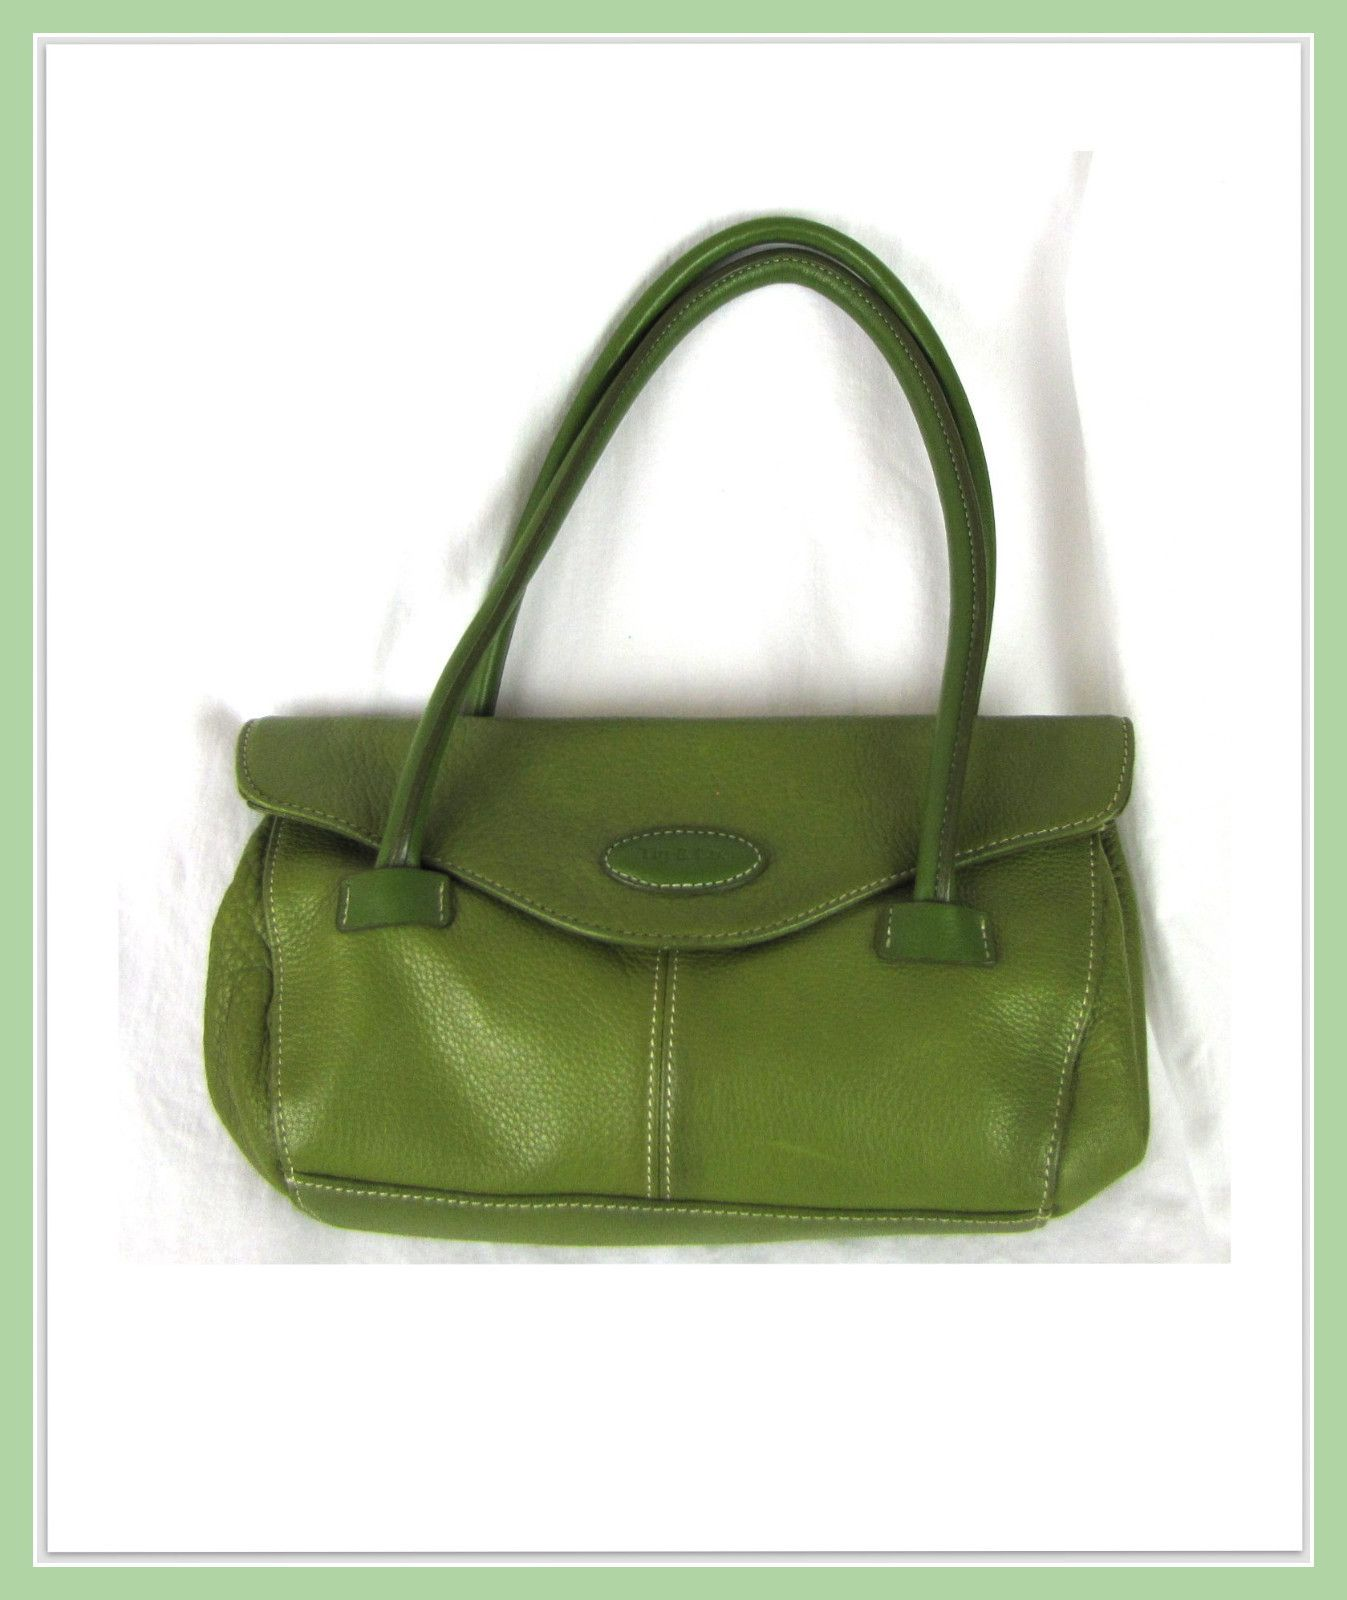 Tig and Company Green Leather Handbag  a9651a32aa1d7